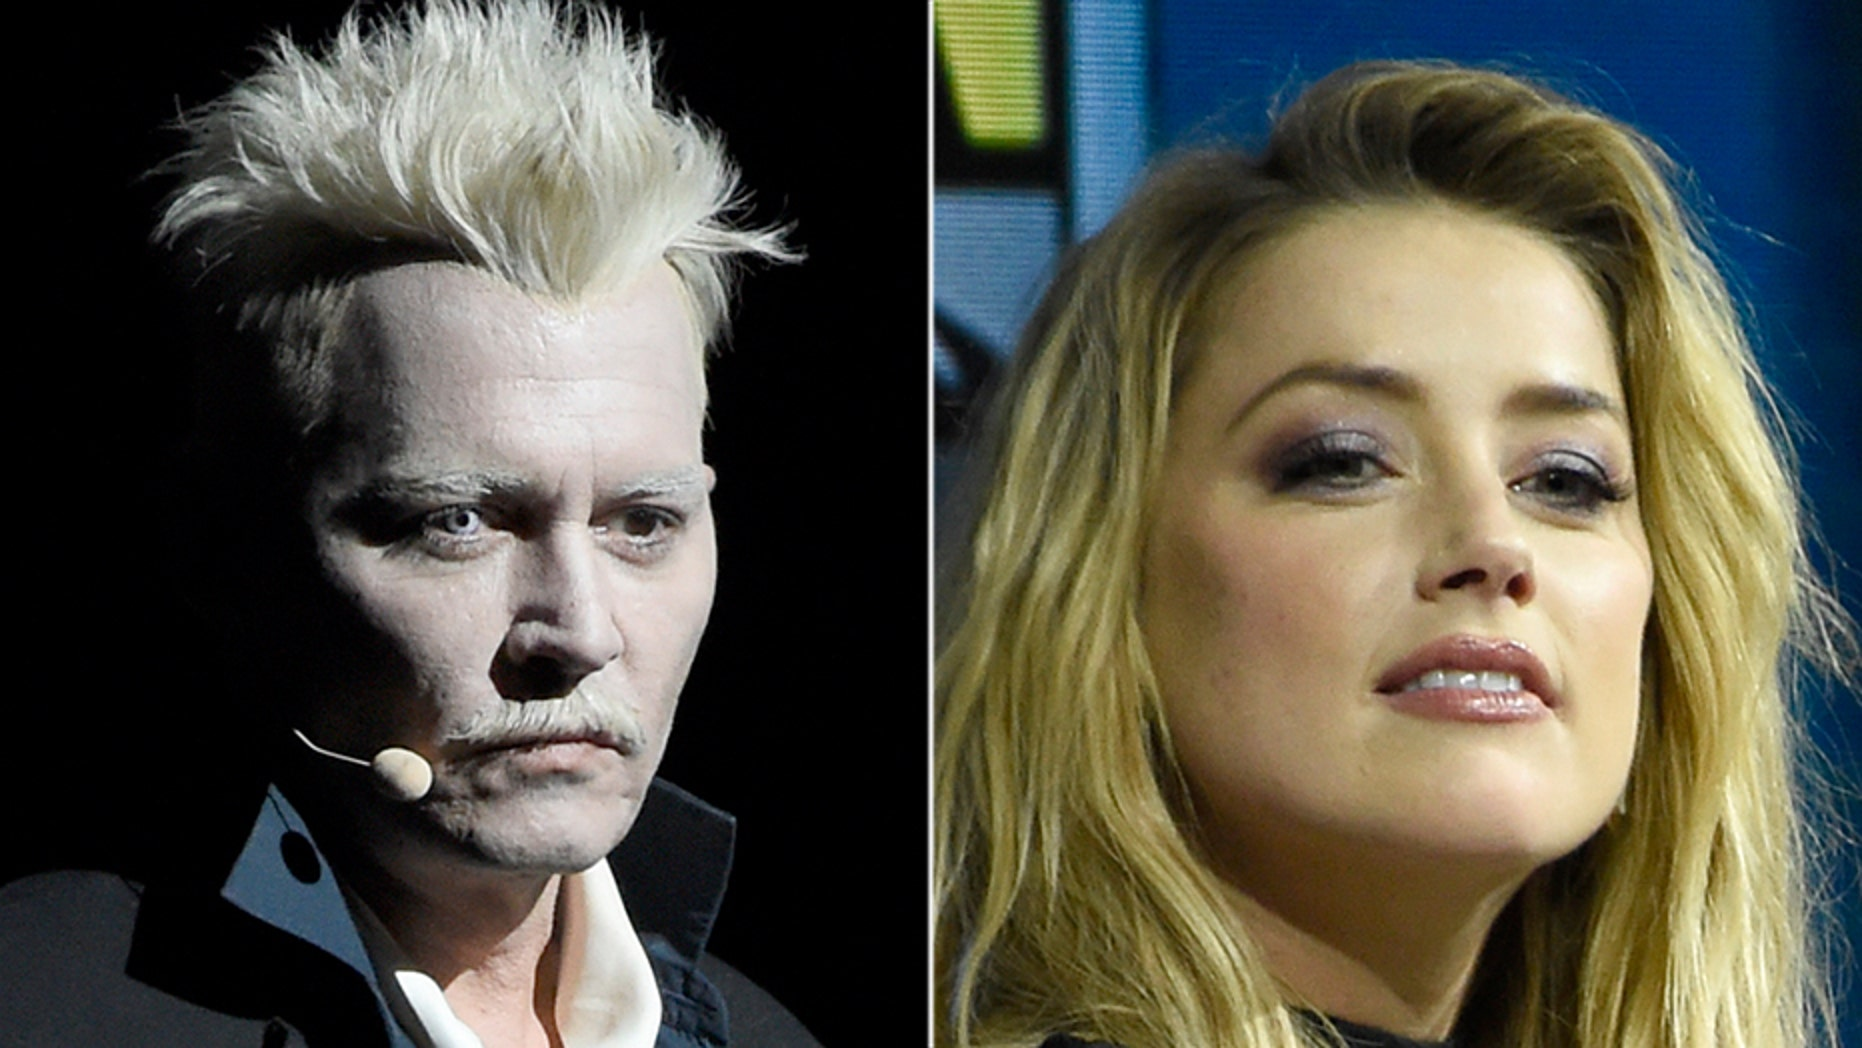 Johnny Depp and Amber Heard managed to avoid each other on Saturday at Comic-Con.